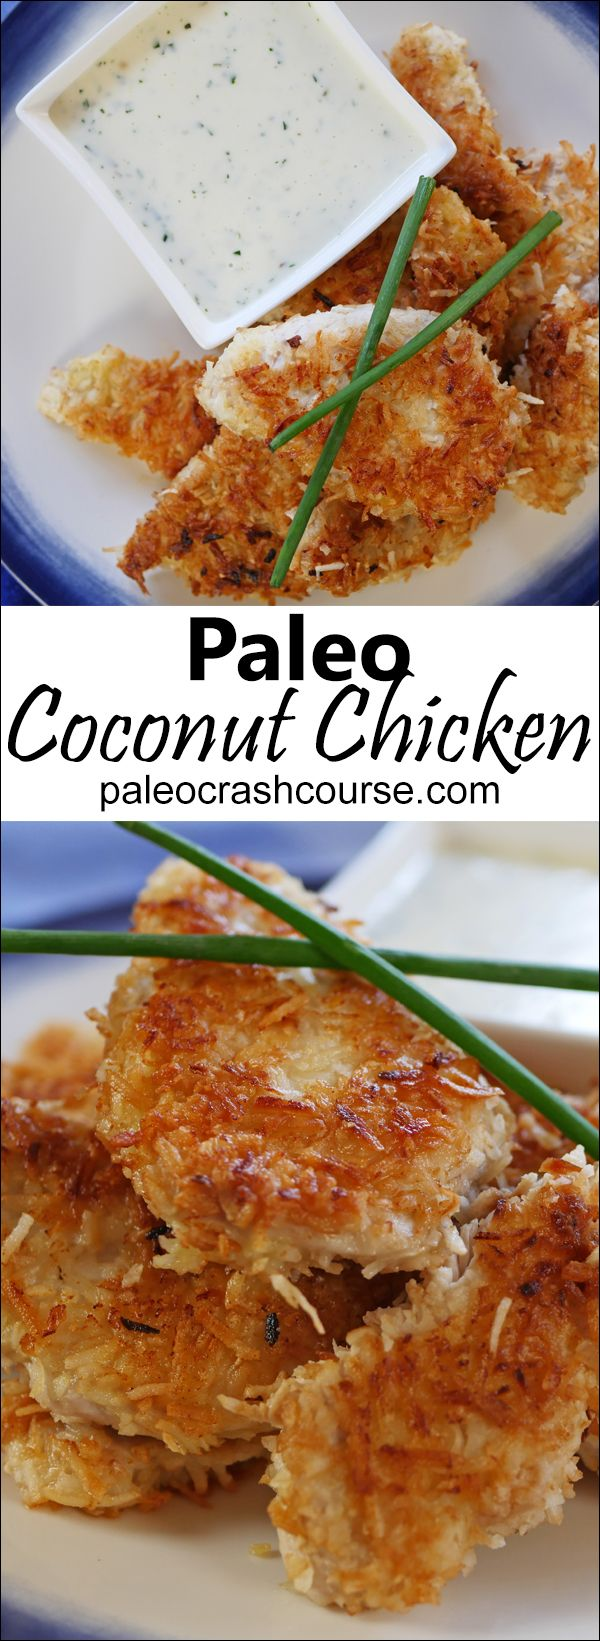 Step up dinner this week with this recipe for sweet + crunchy paleo Coconut Chicken.